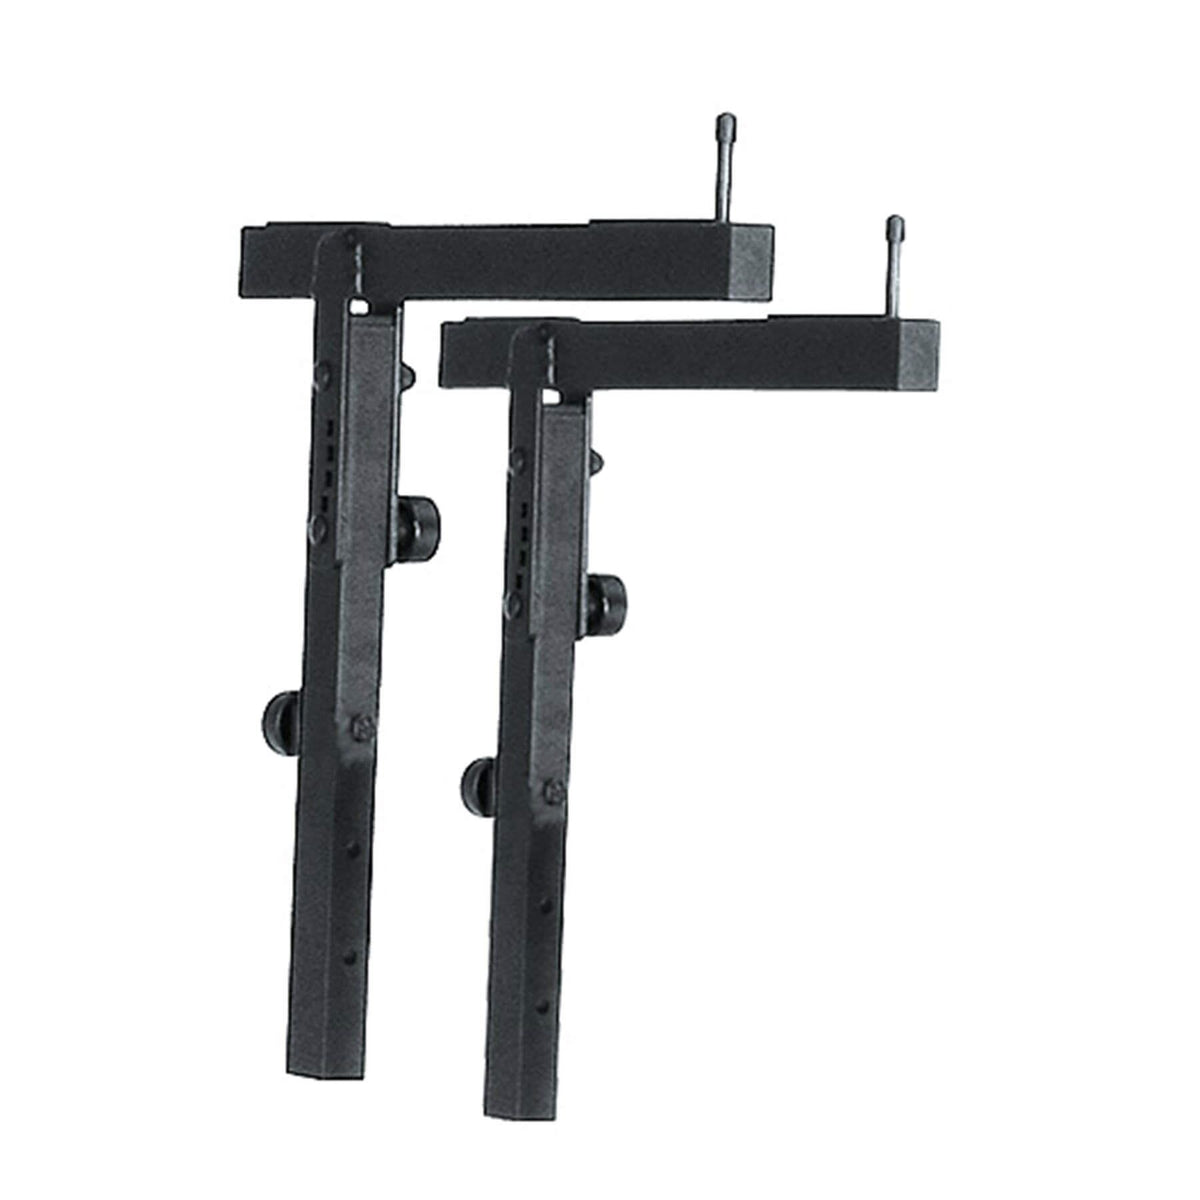 K&M 18881 Black Stacker A Adjustable 2nd Tier for Keyboard Stand 18880